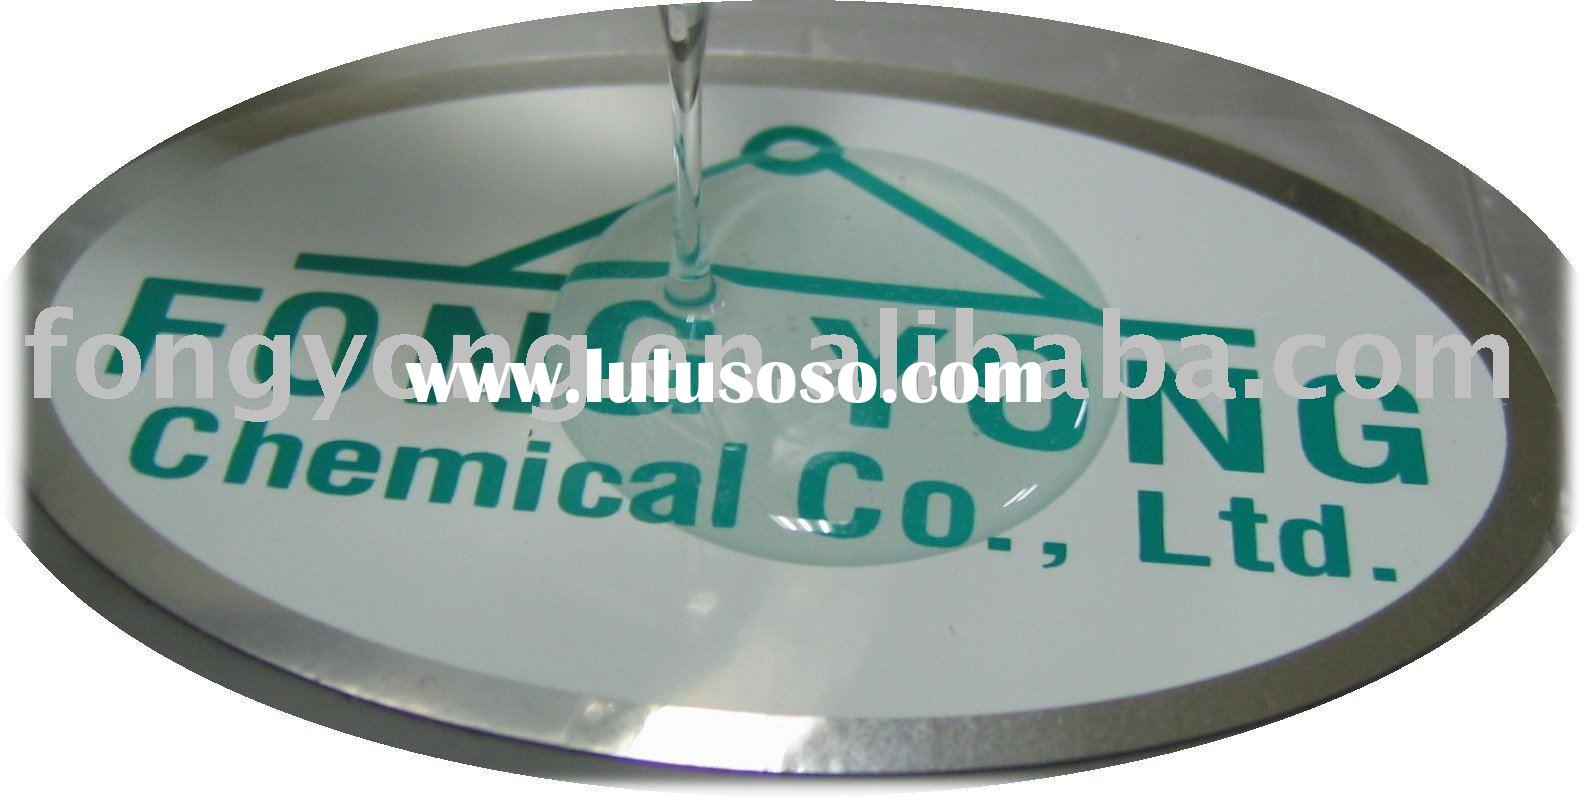 doming resin - flexible domed resin, epoxy dome resin E-1160/h-1160